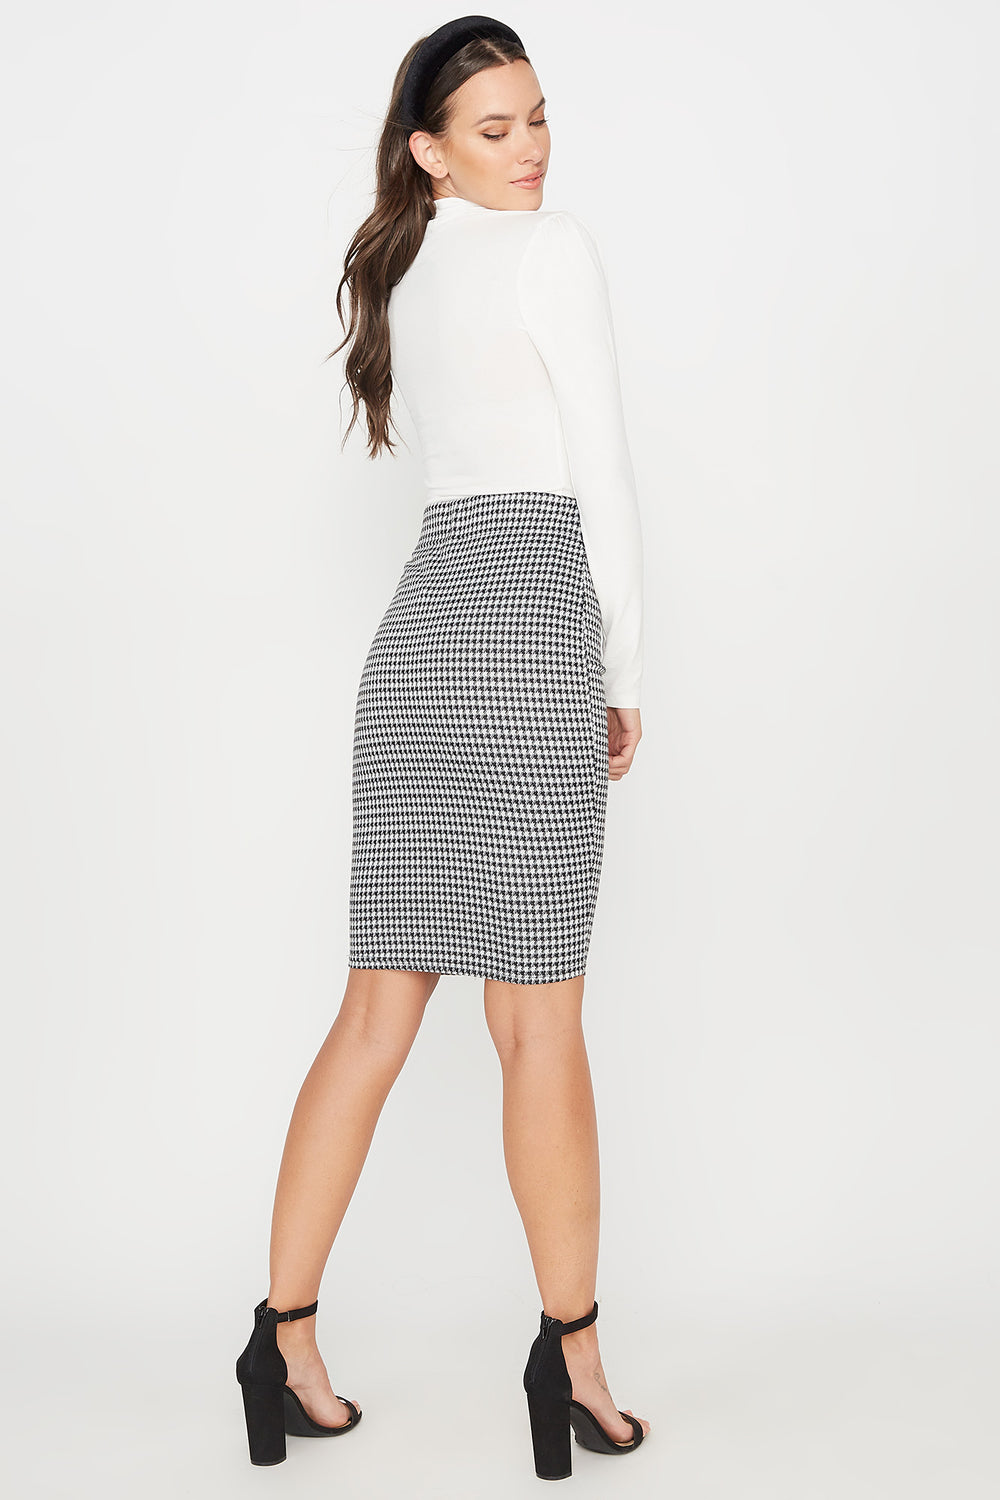 Pull-On Bodycon Midi Skirt Black with White